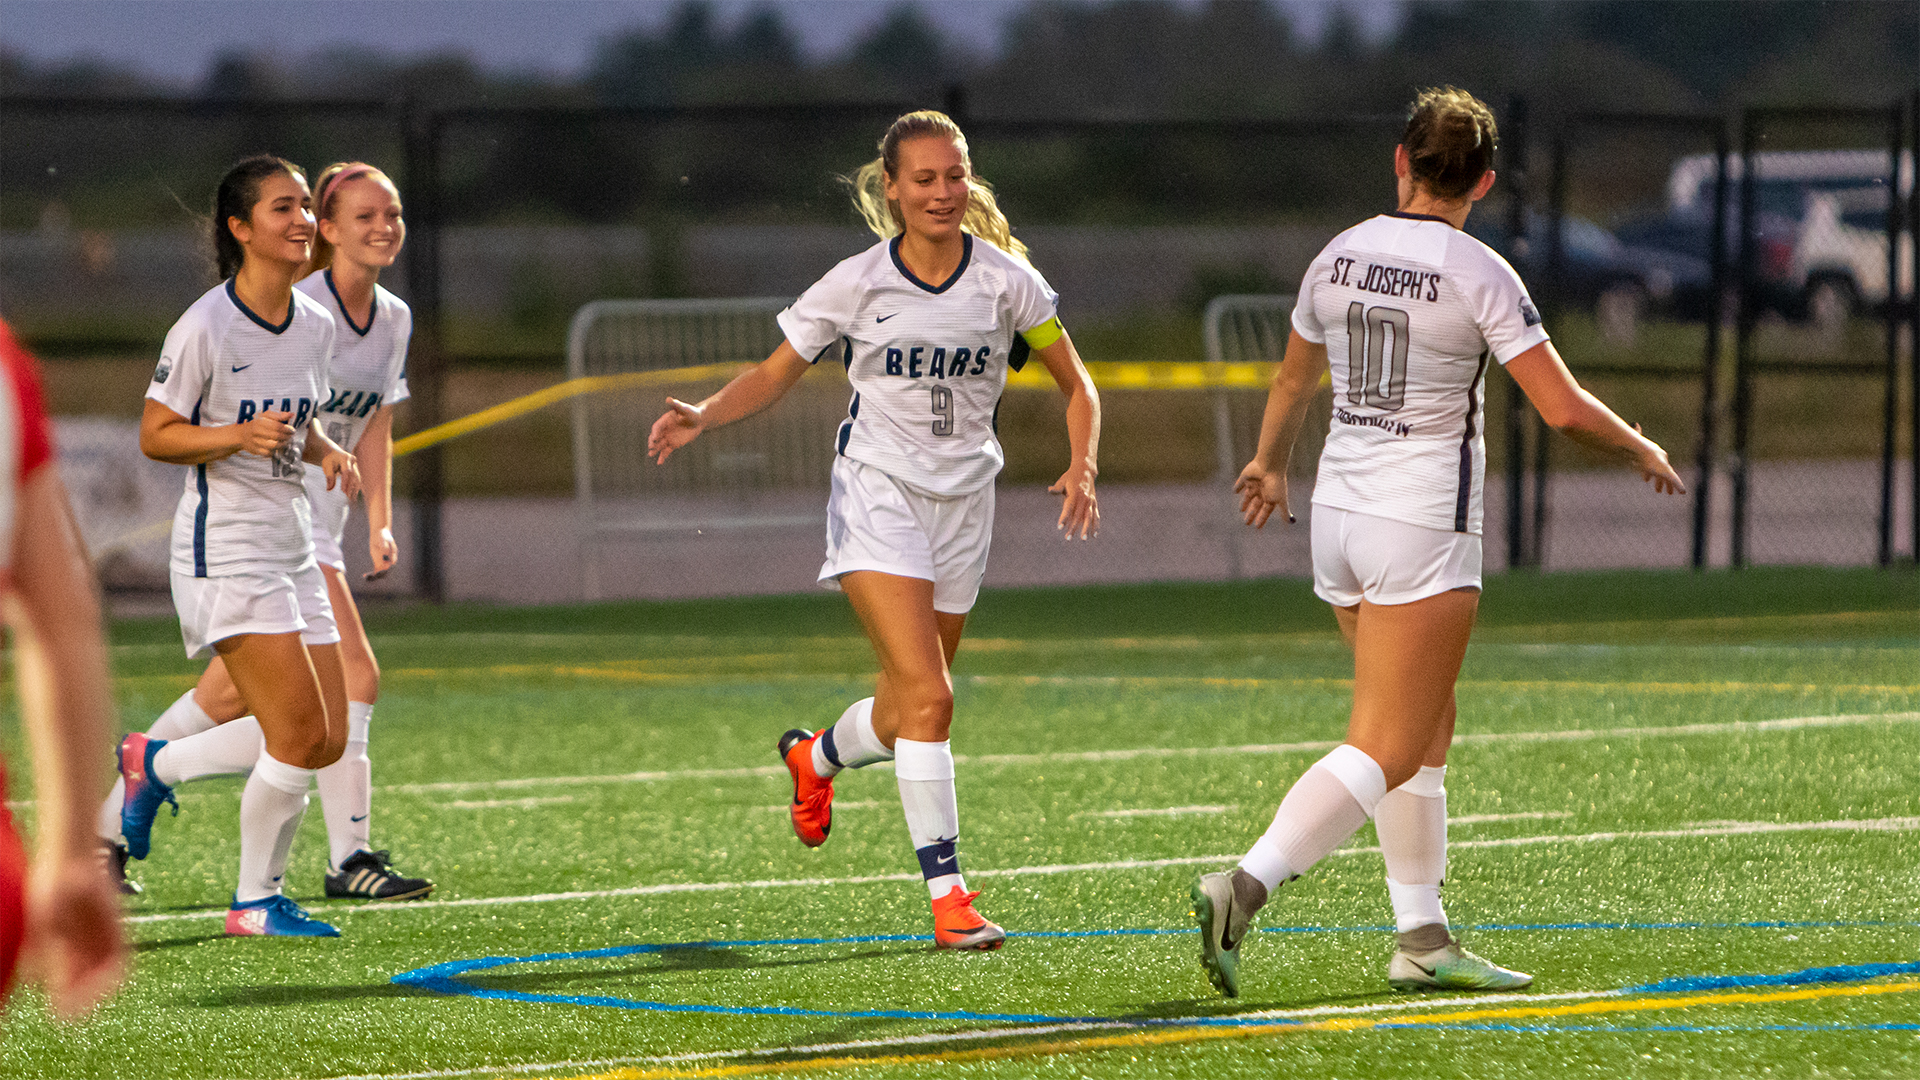 Molic's Hat Trick, Sequeira's Record-Breaking Night Propel Women's Soccer Over York